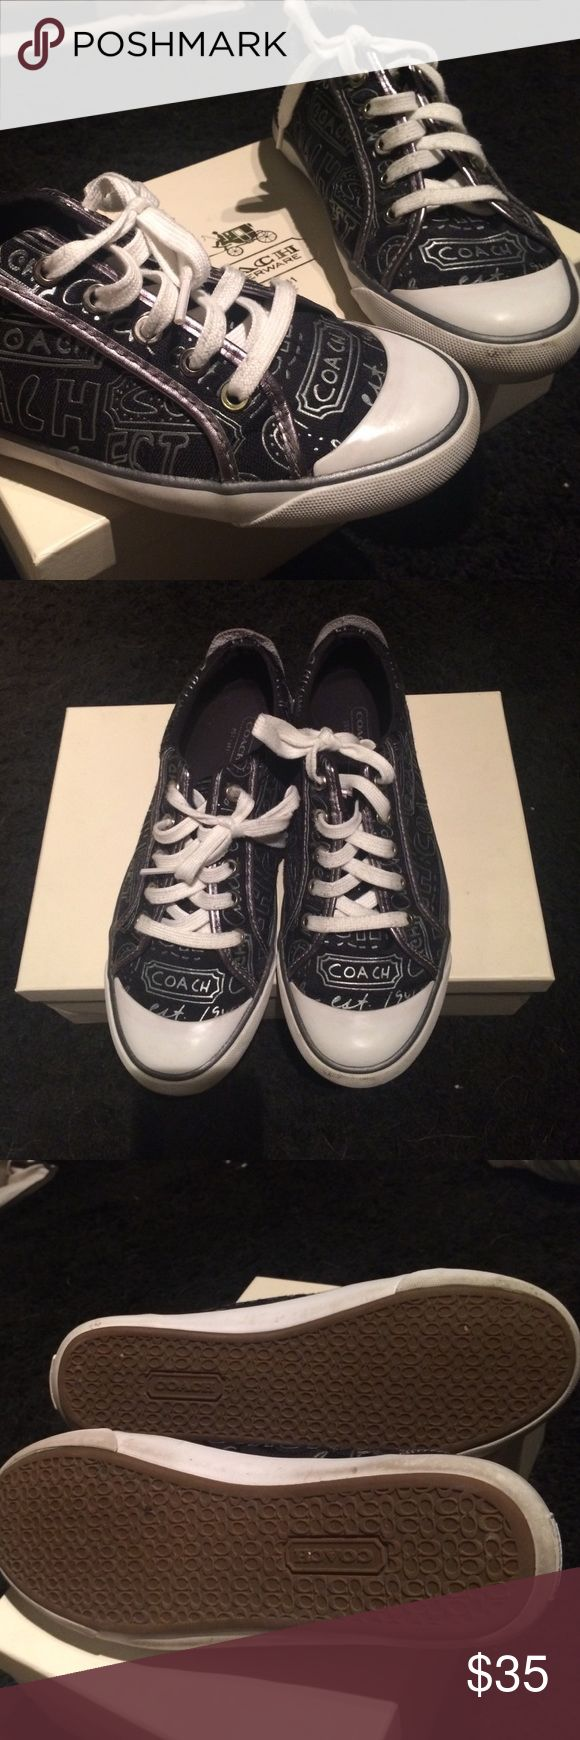 Size 8, genuine coach sneakers with box! Gently used, size 8 black and silver coach sneakers! Love these shoes but my feet grew from being pregnant  they need someone to love them! Smoke free home, gently worn, no damage! Make me an offer! Coach Shoes Sneakers